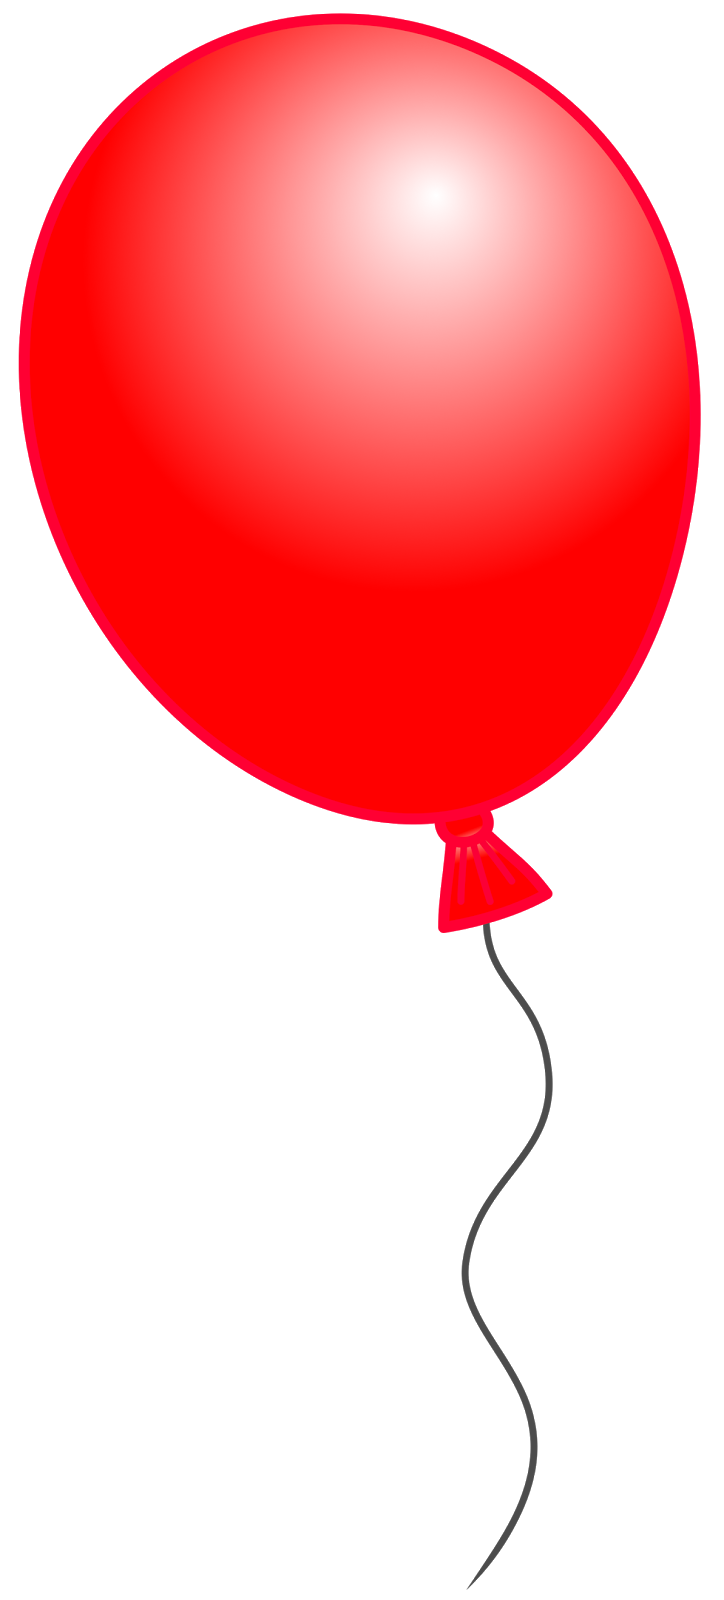 724x1600 Red Balloon Clipart